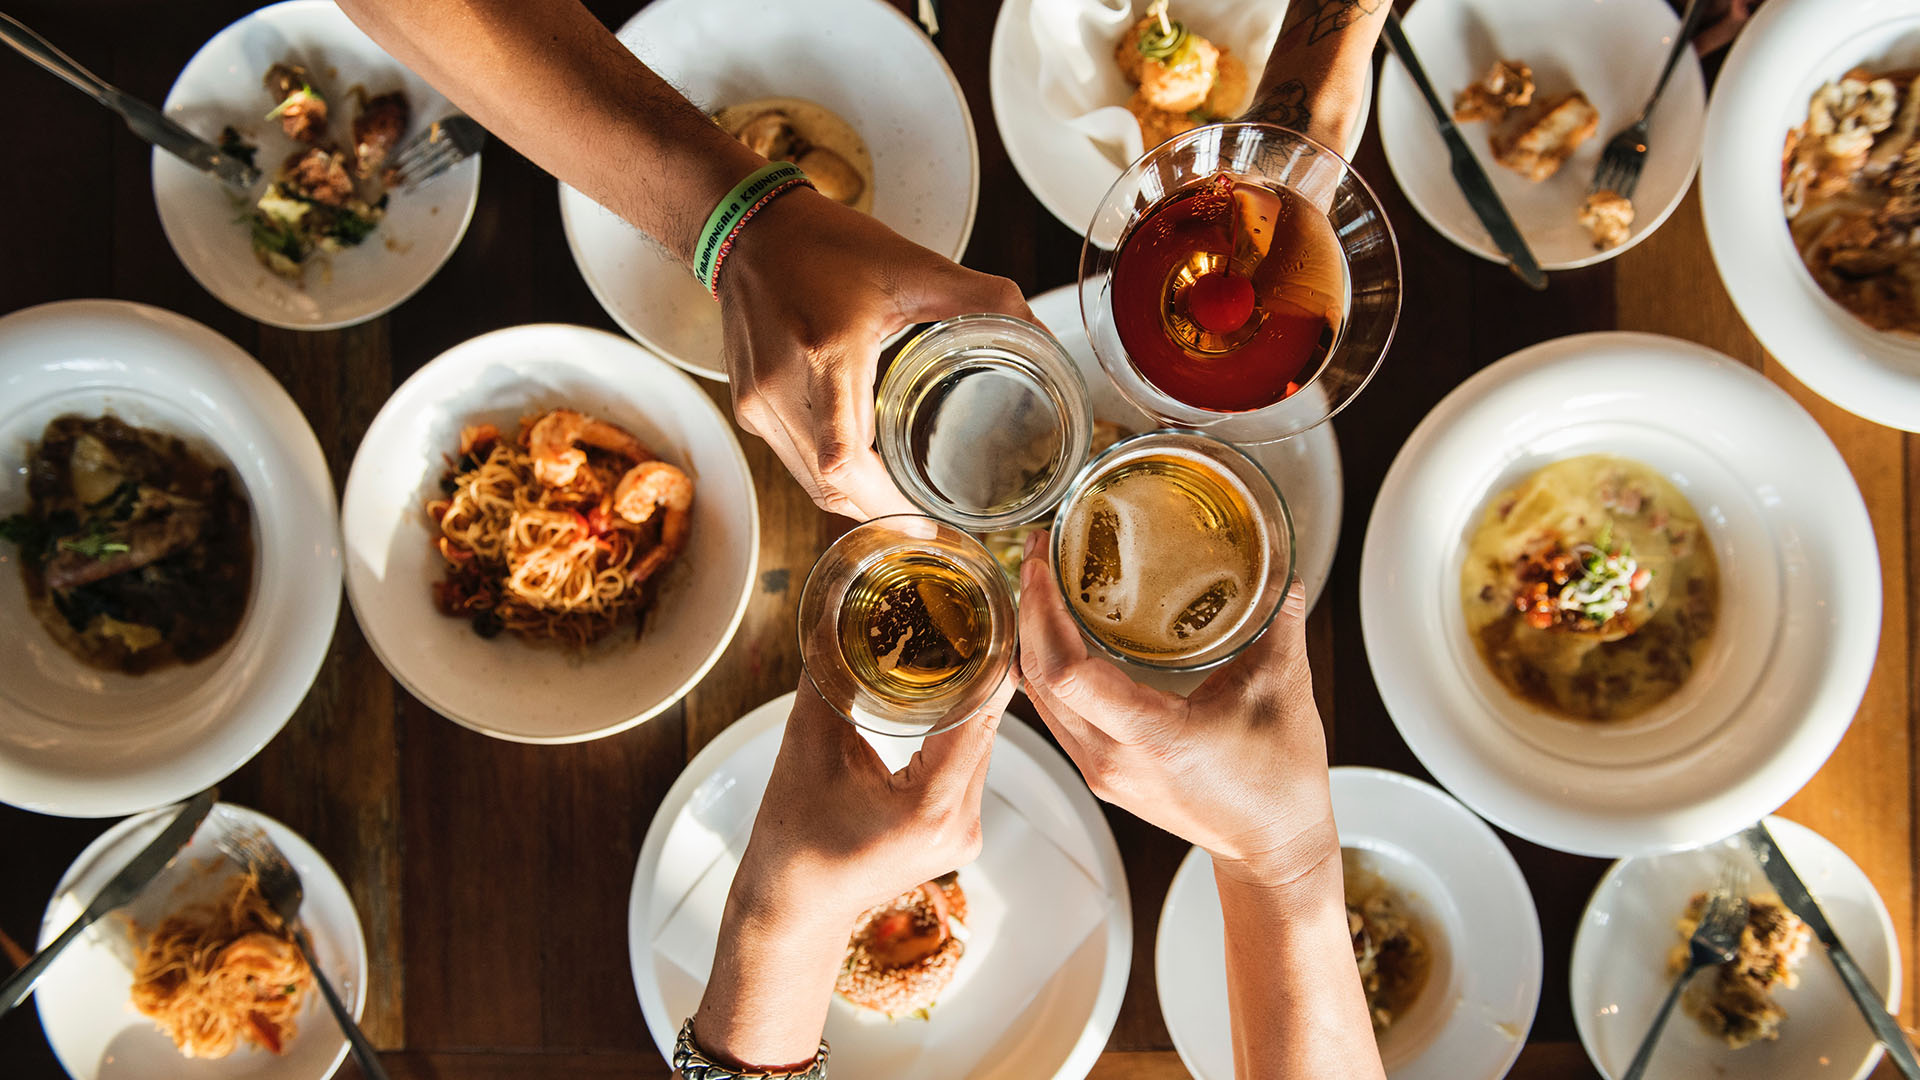 Why are beer and food now such a trendy pair even in restaurants?